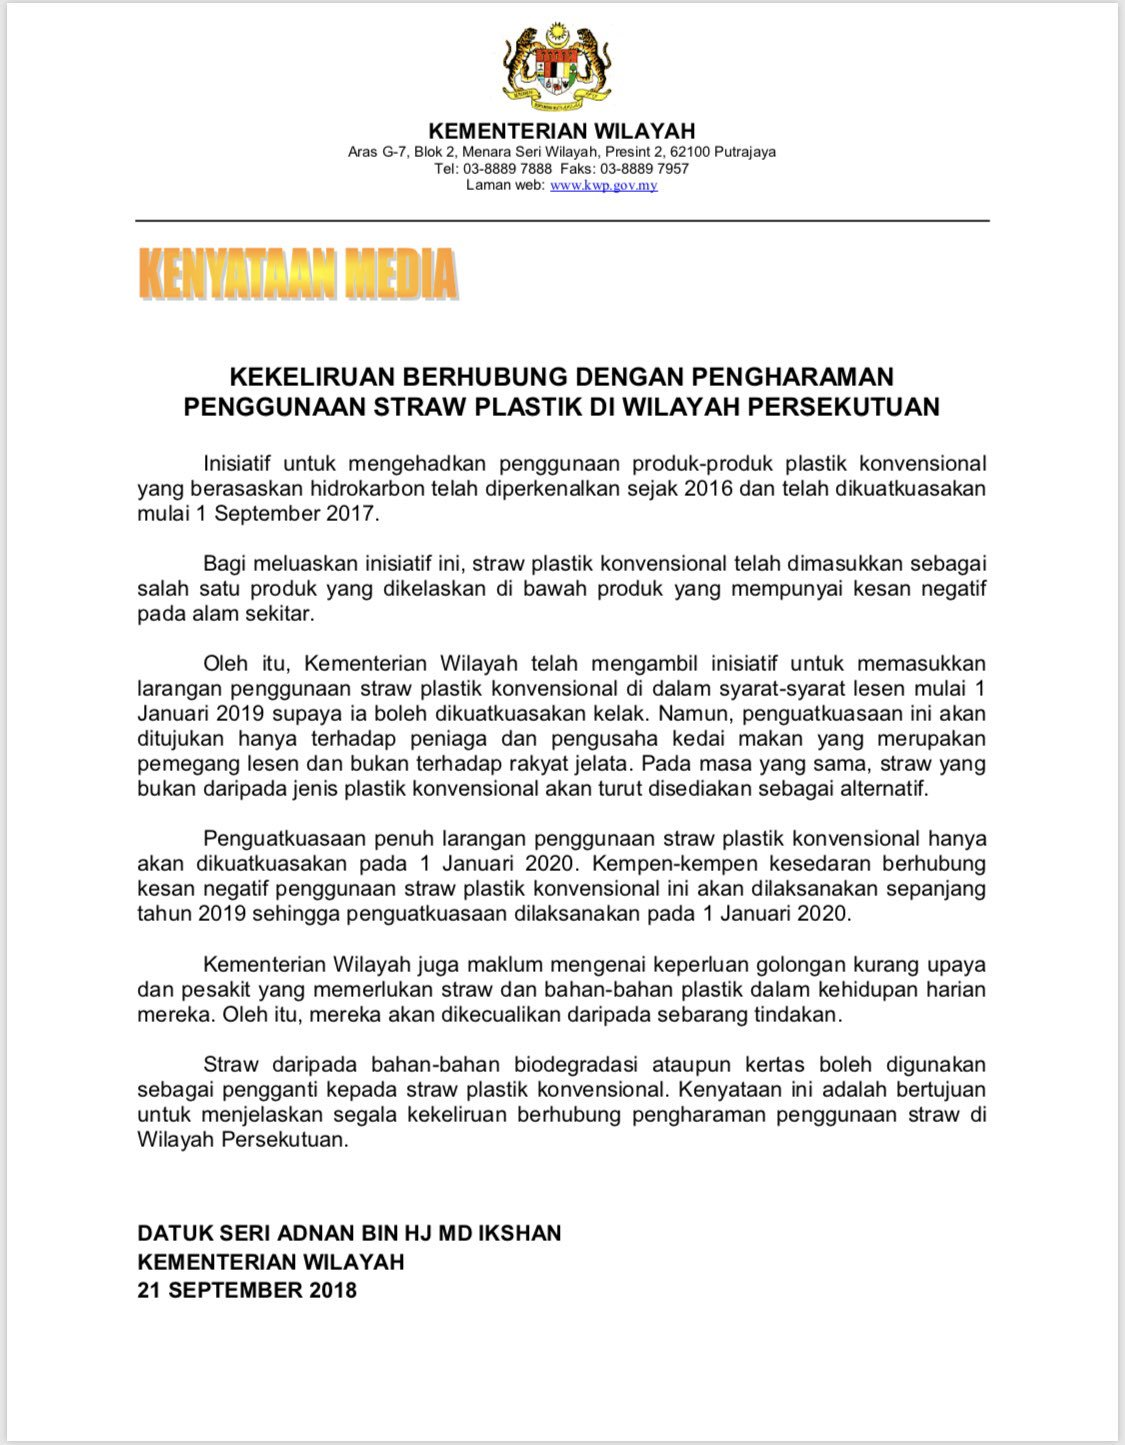 Maya Karin On Twitter Here S The Newest Statement Just Released By Ministry Of Federal Territory Regarding Plastic Straws